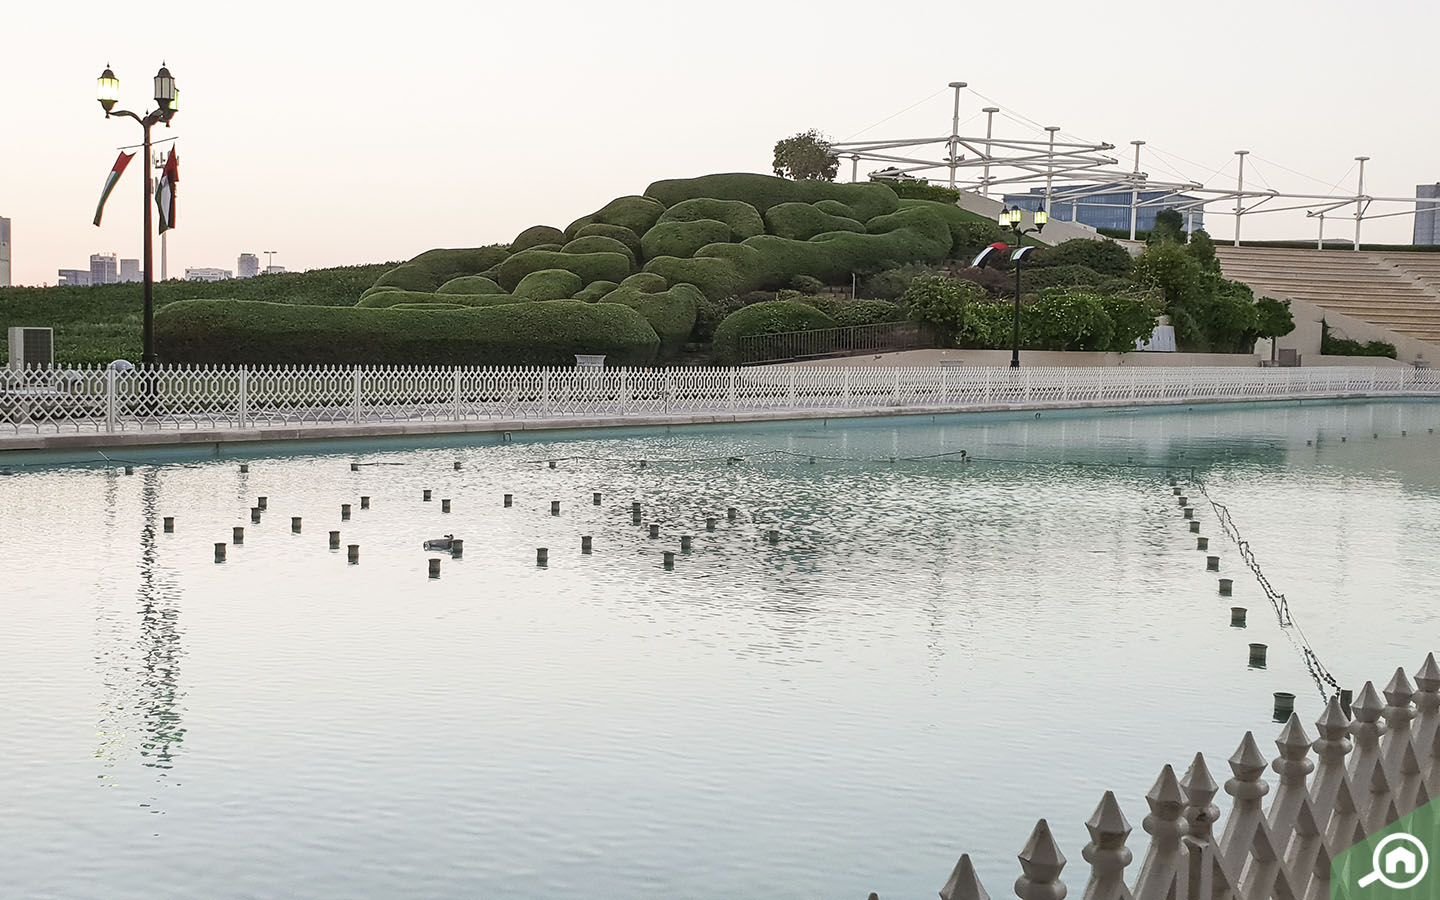 Fountains in parks in Abu Dhabi